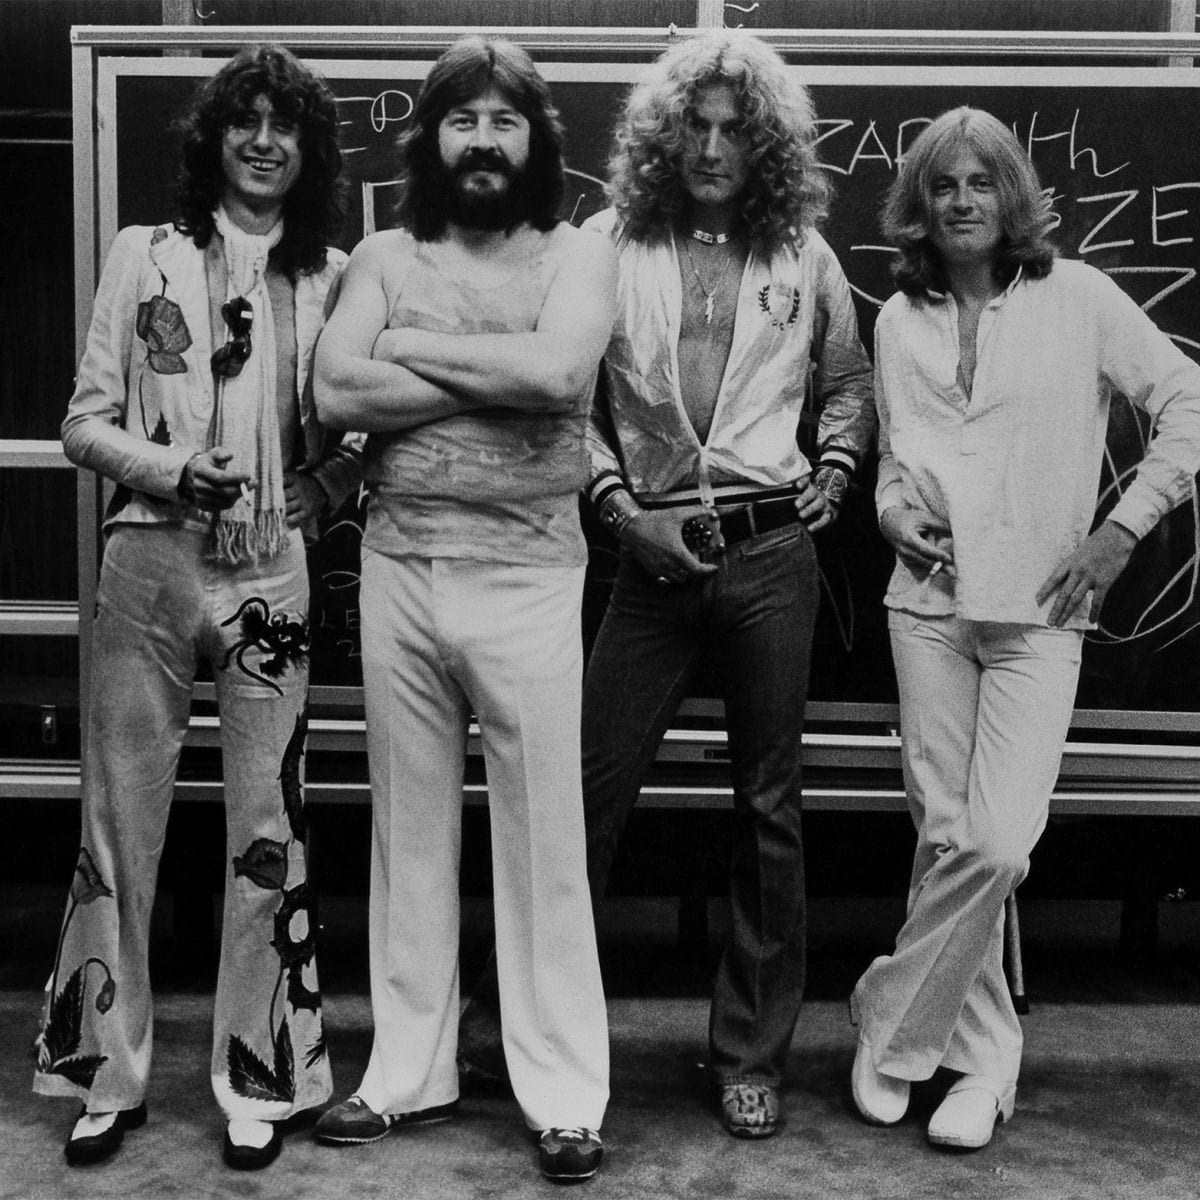 Led Zeppelin is one of the top-selling rock bands of all time